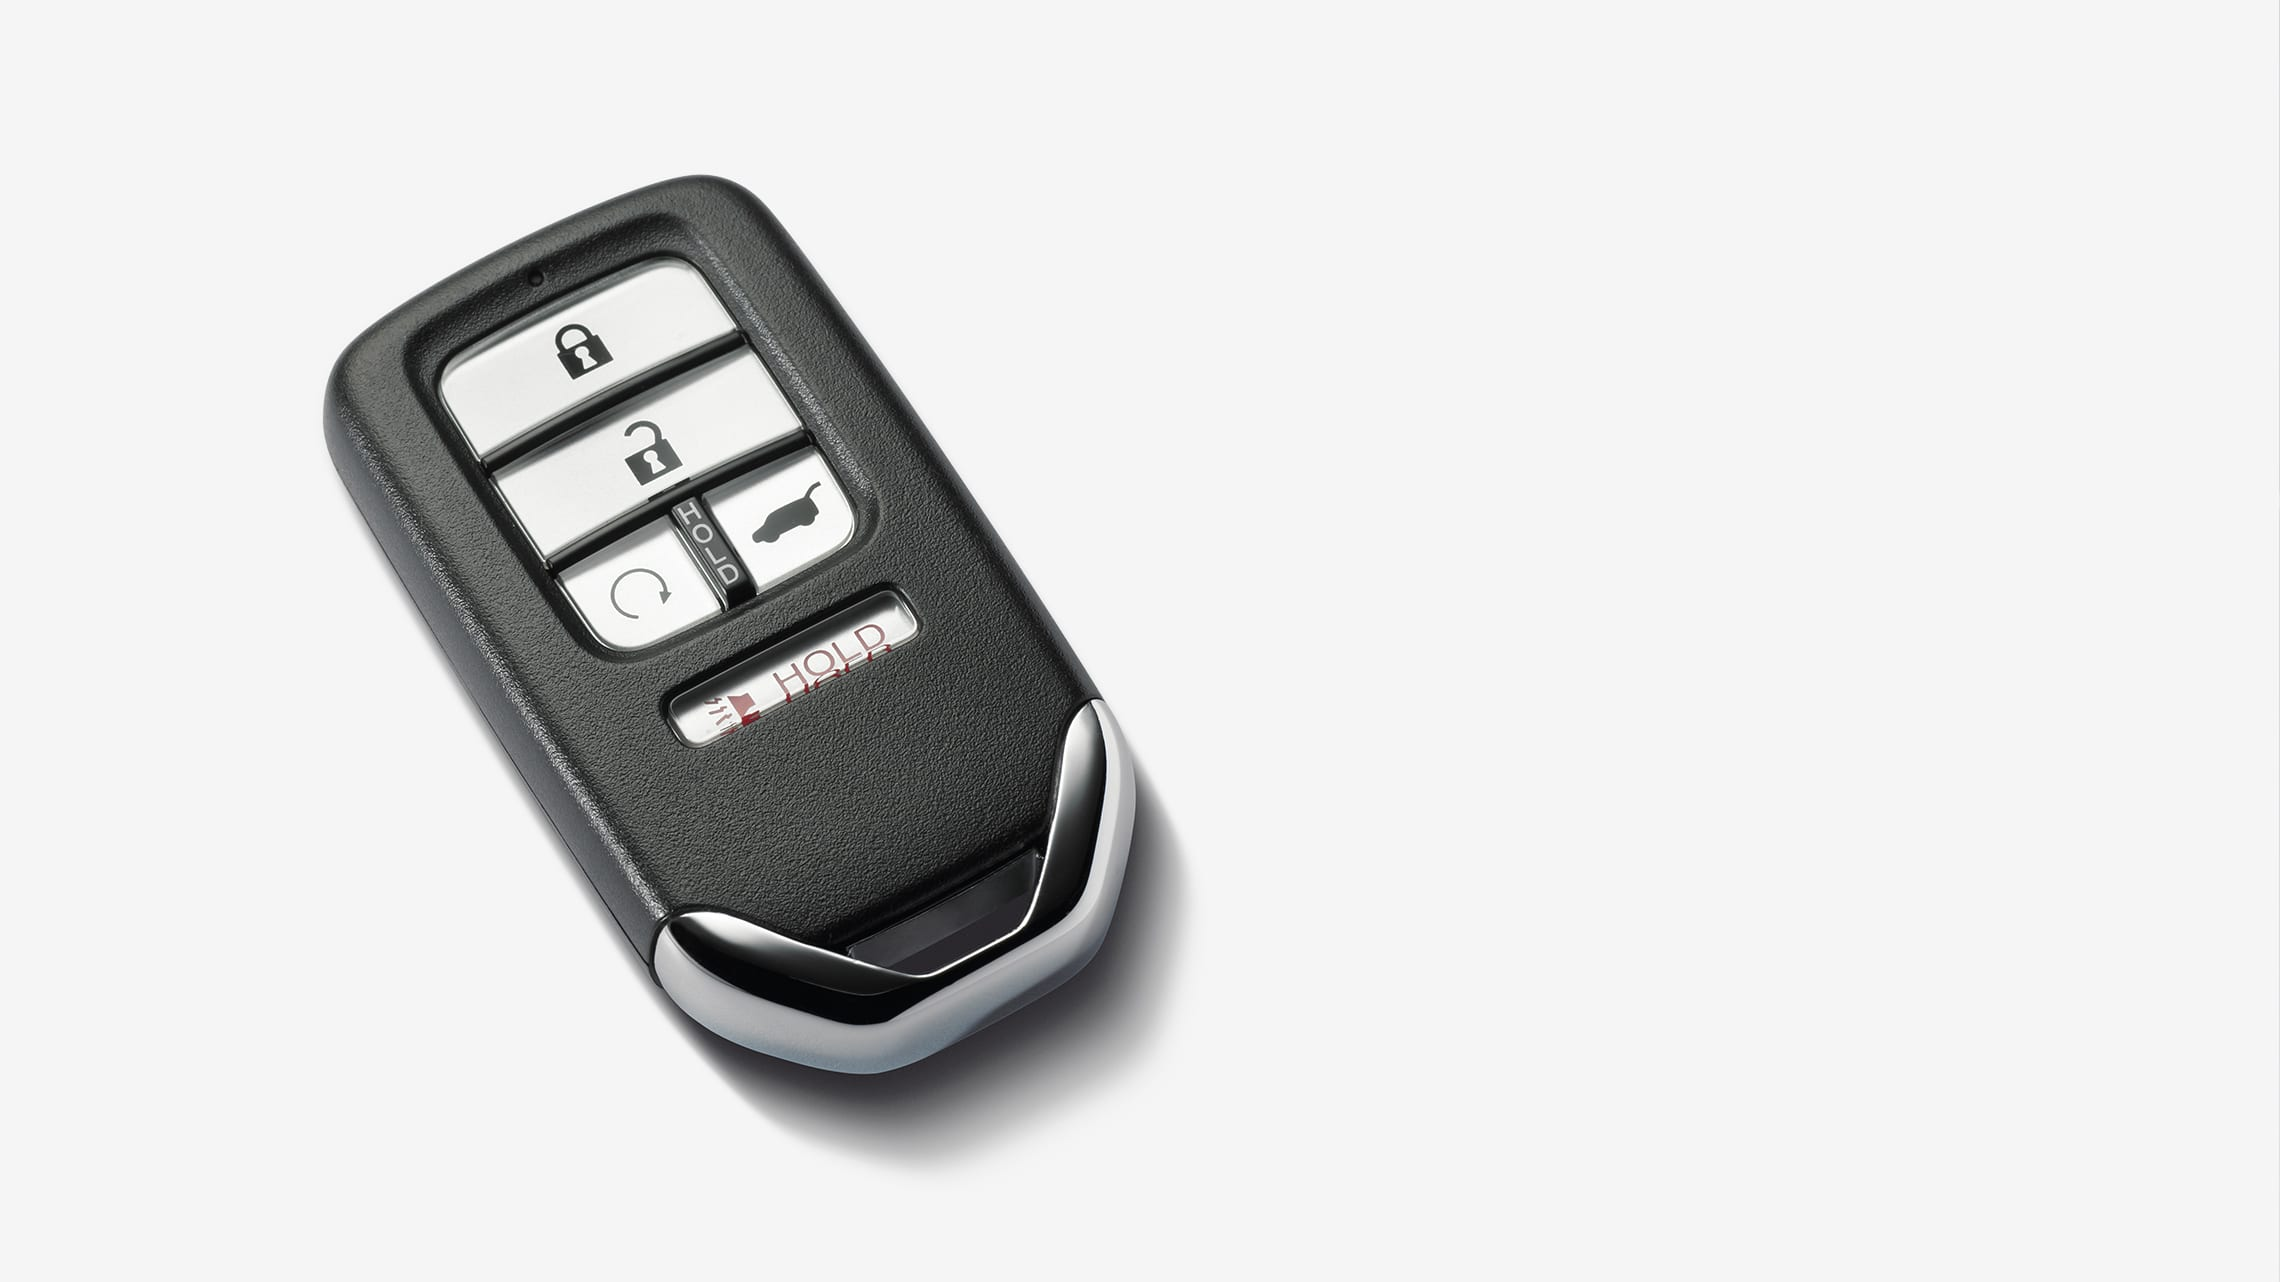 2019 Honda CR-V key fob with Smart Entry feature.